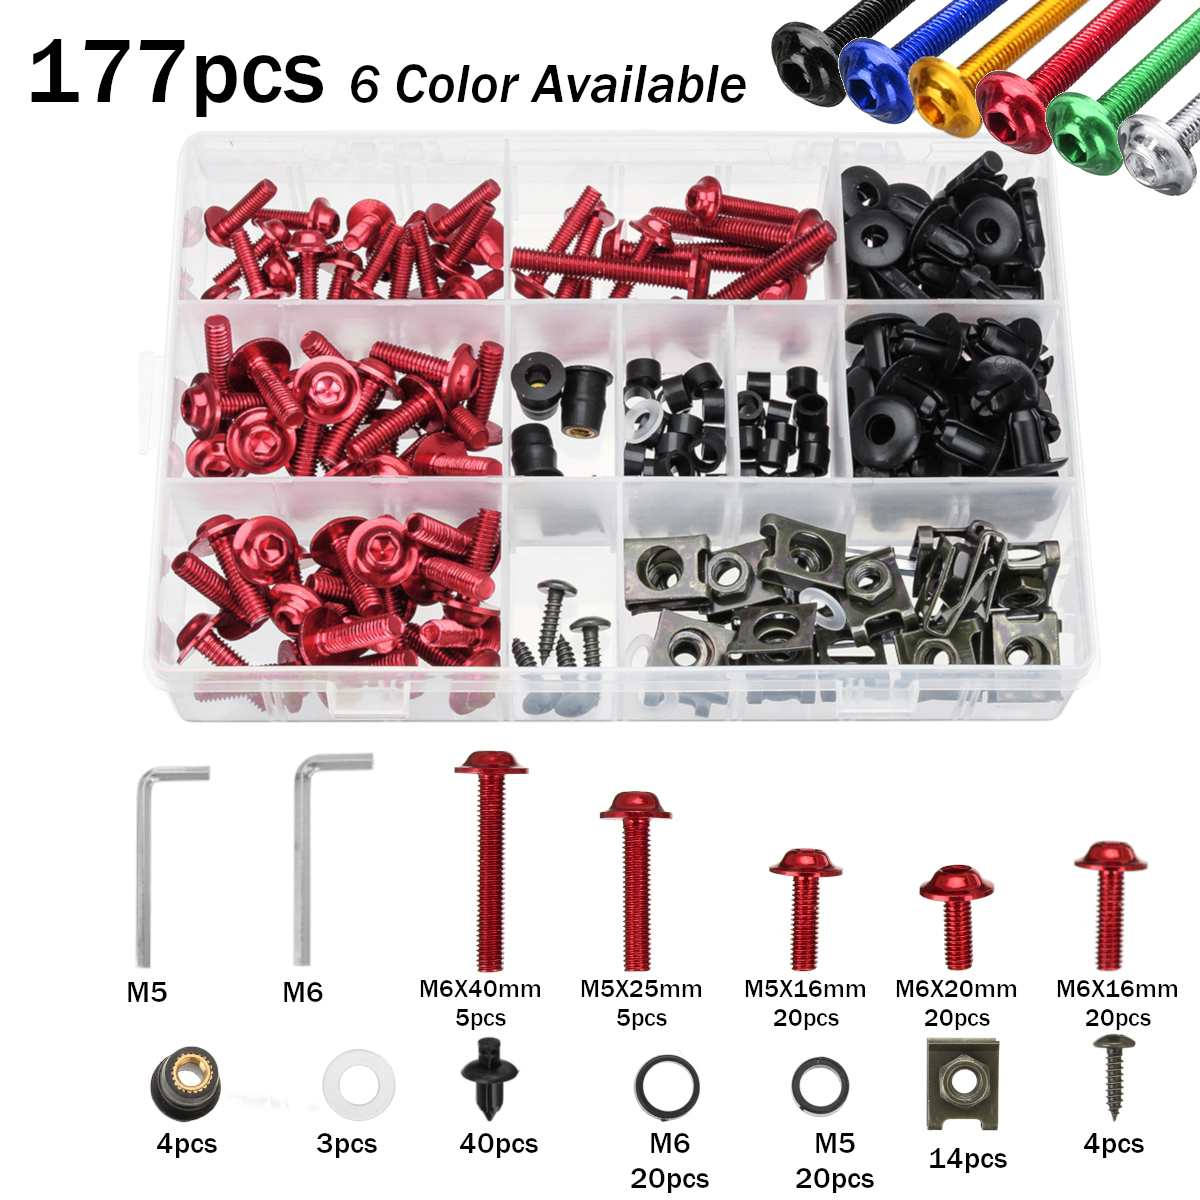 177pcs Motorcycle Full Fairing Bolt Kit Nuts Screws Clips Complete Set for Honda for Yamaha for Kawasaki for Suzuki Multi-color177pcs Motorcycle Full Fairing Bolt Kit Nuts Screws Clips Complete Set for Honda for Yamaha for Kawasaki for Suzuki Multi-color